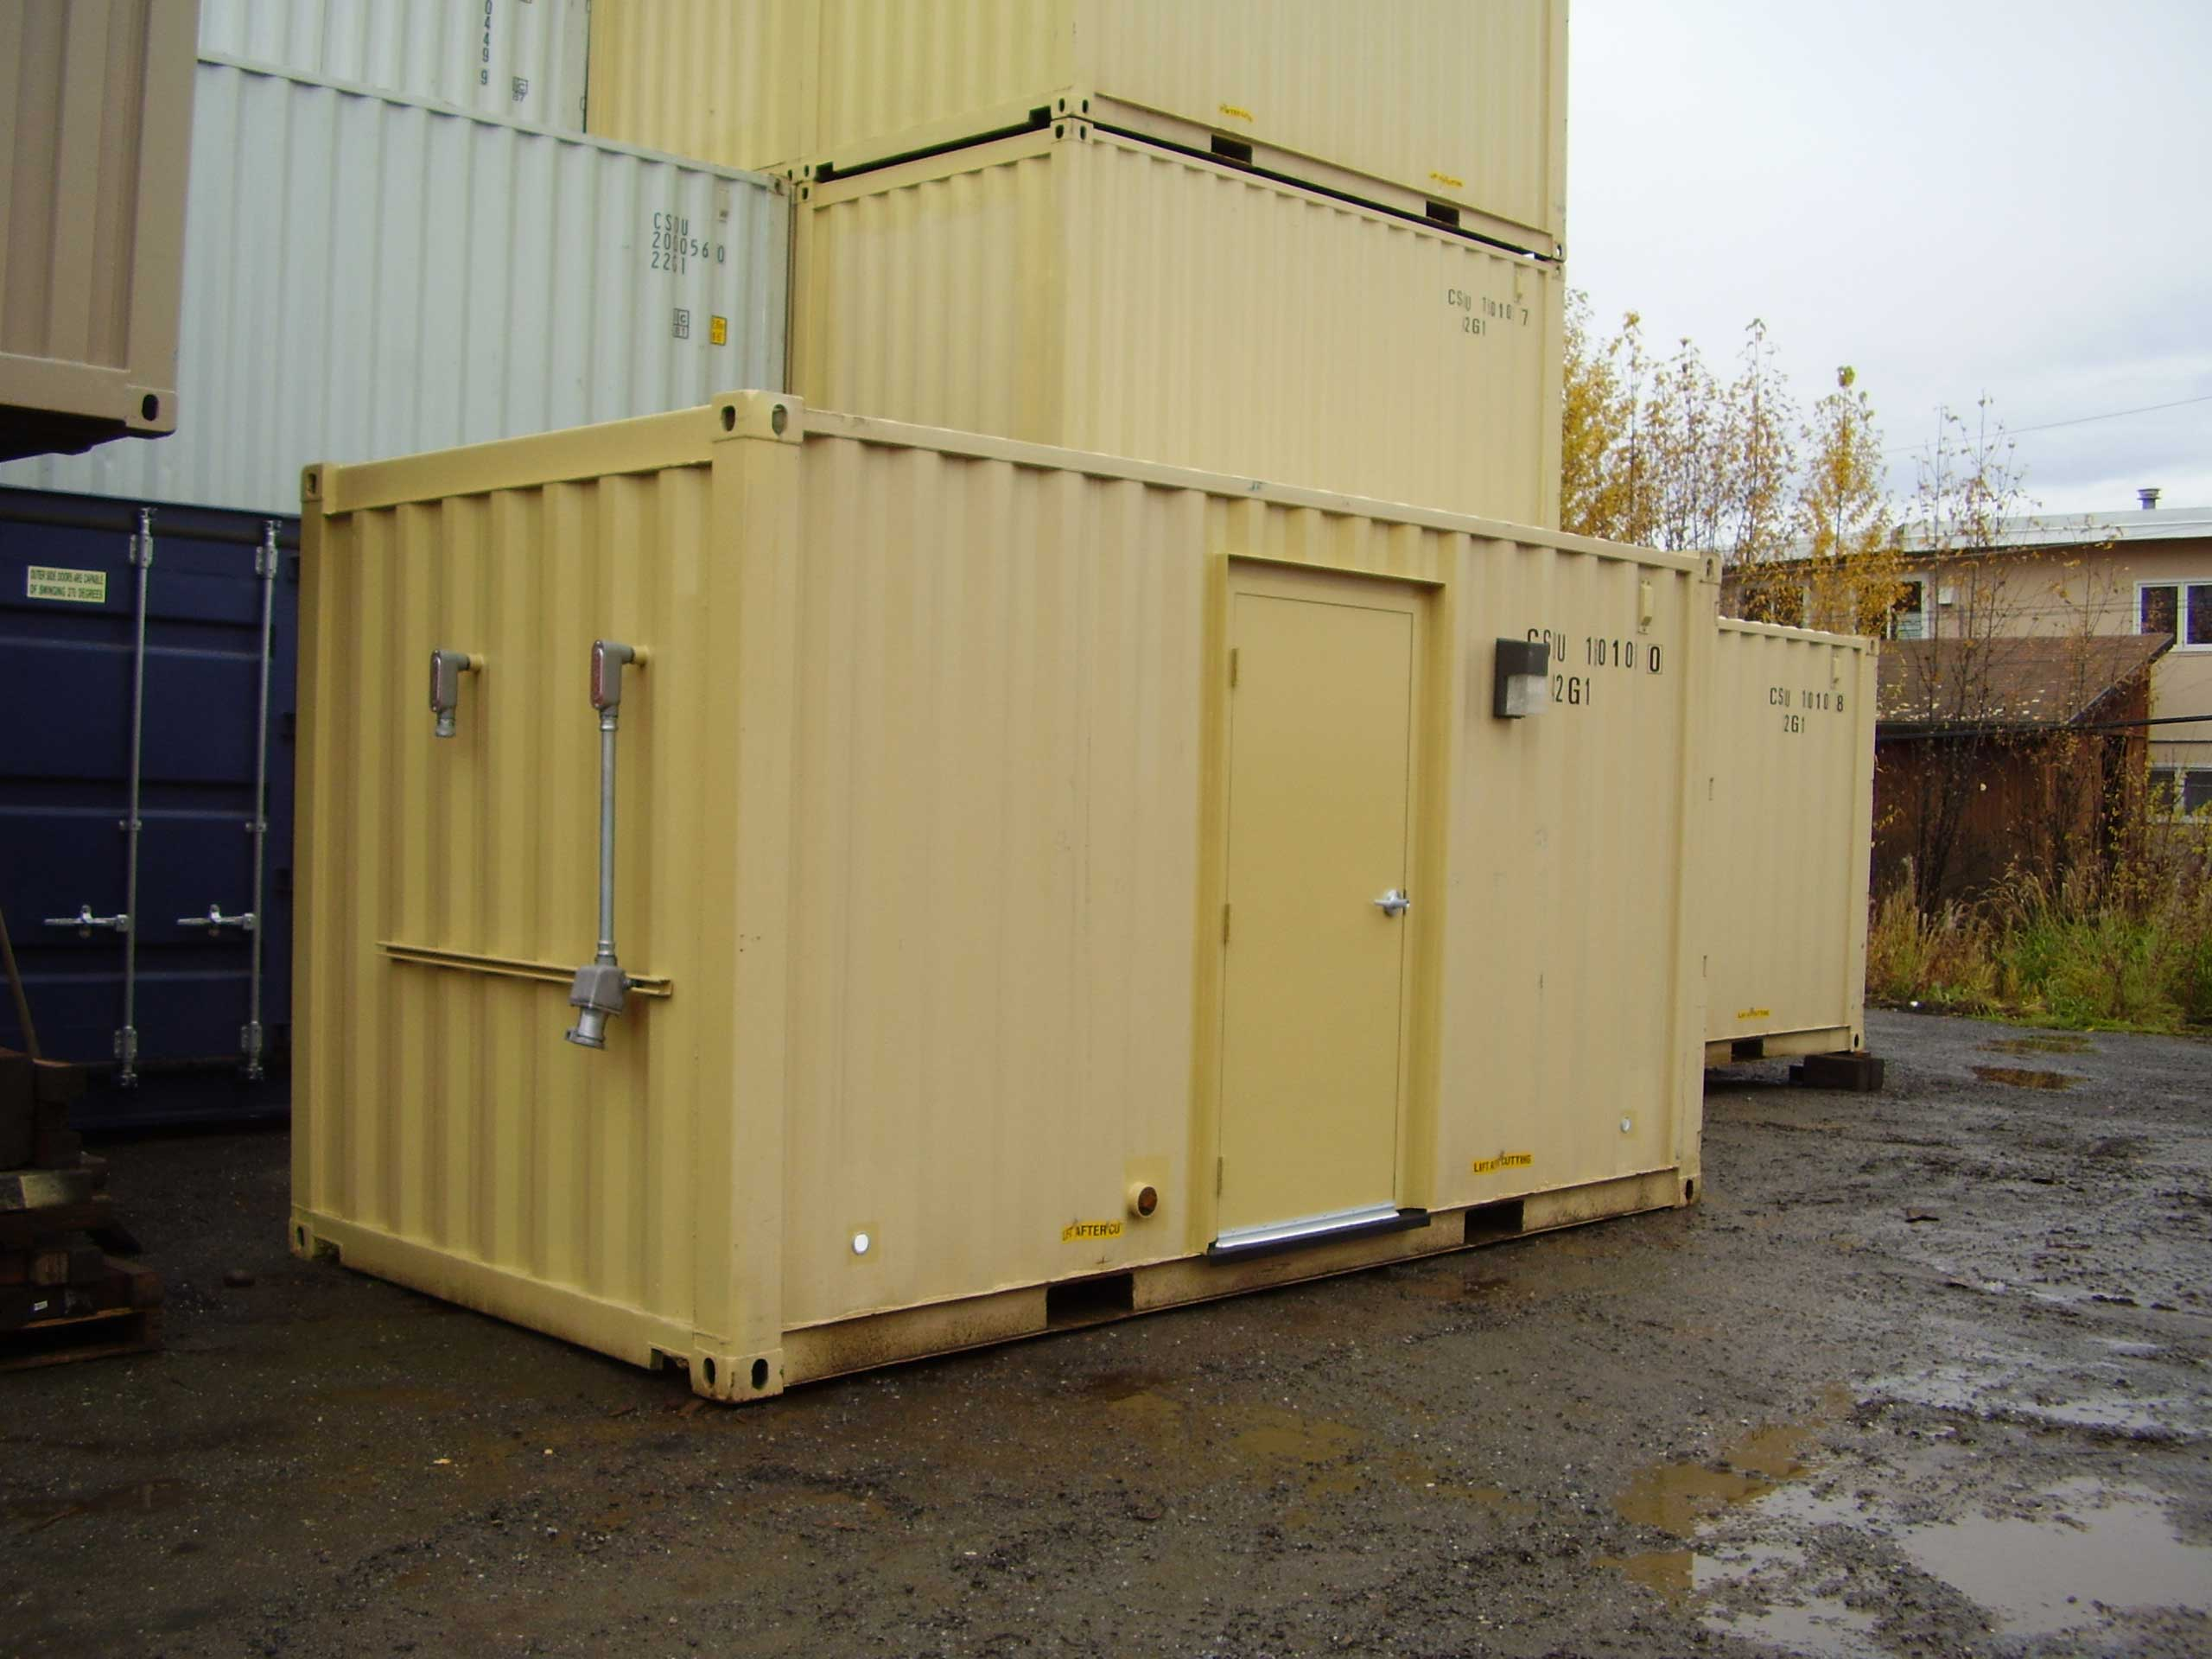 Off/onsite battery power container conversion project.  Provide battery power at remote locations using a container converted to a backup power source, such as this battery power container created for Pogo Mine.